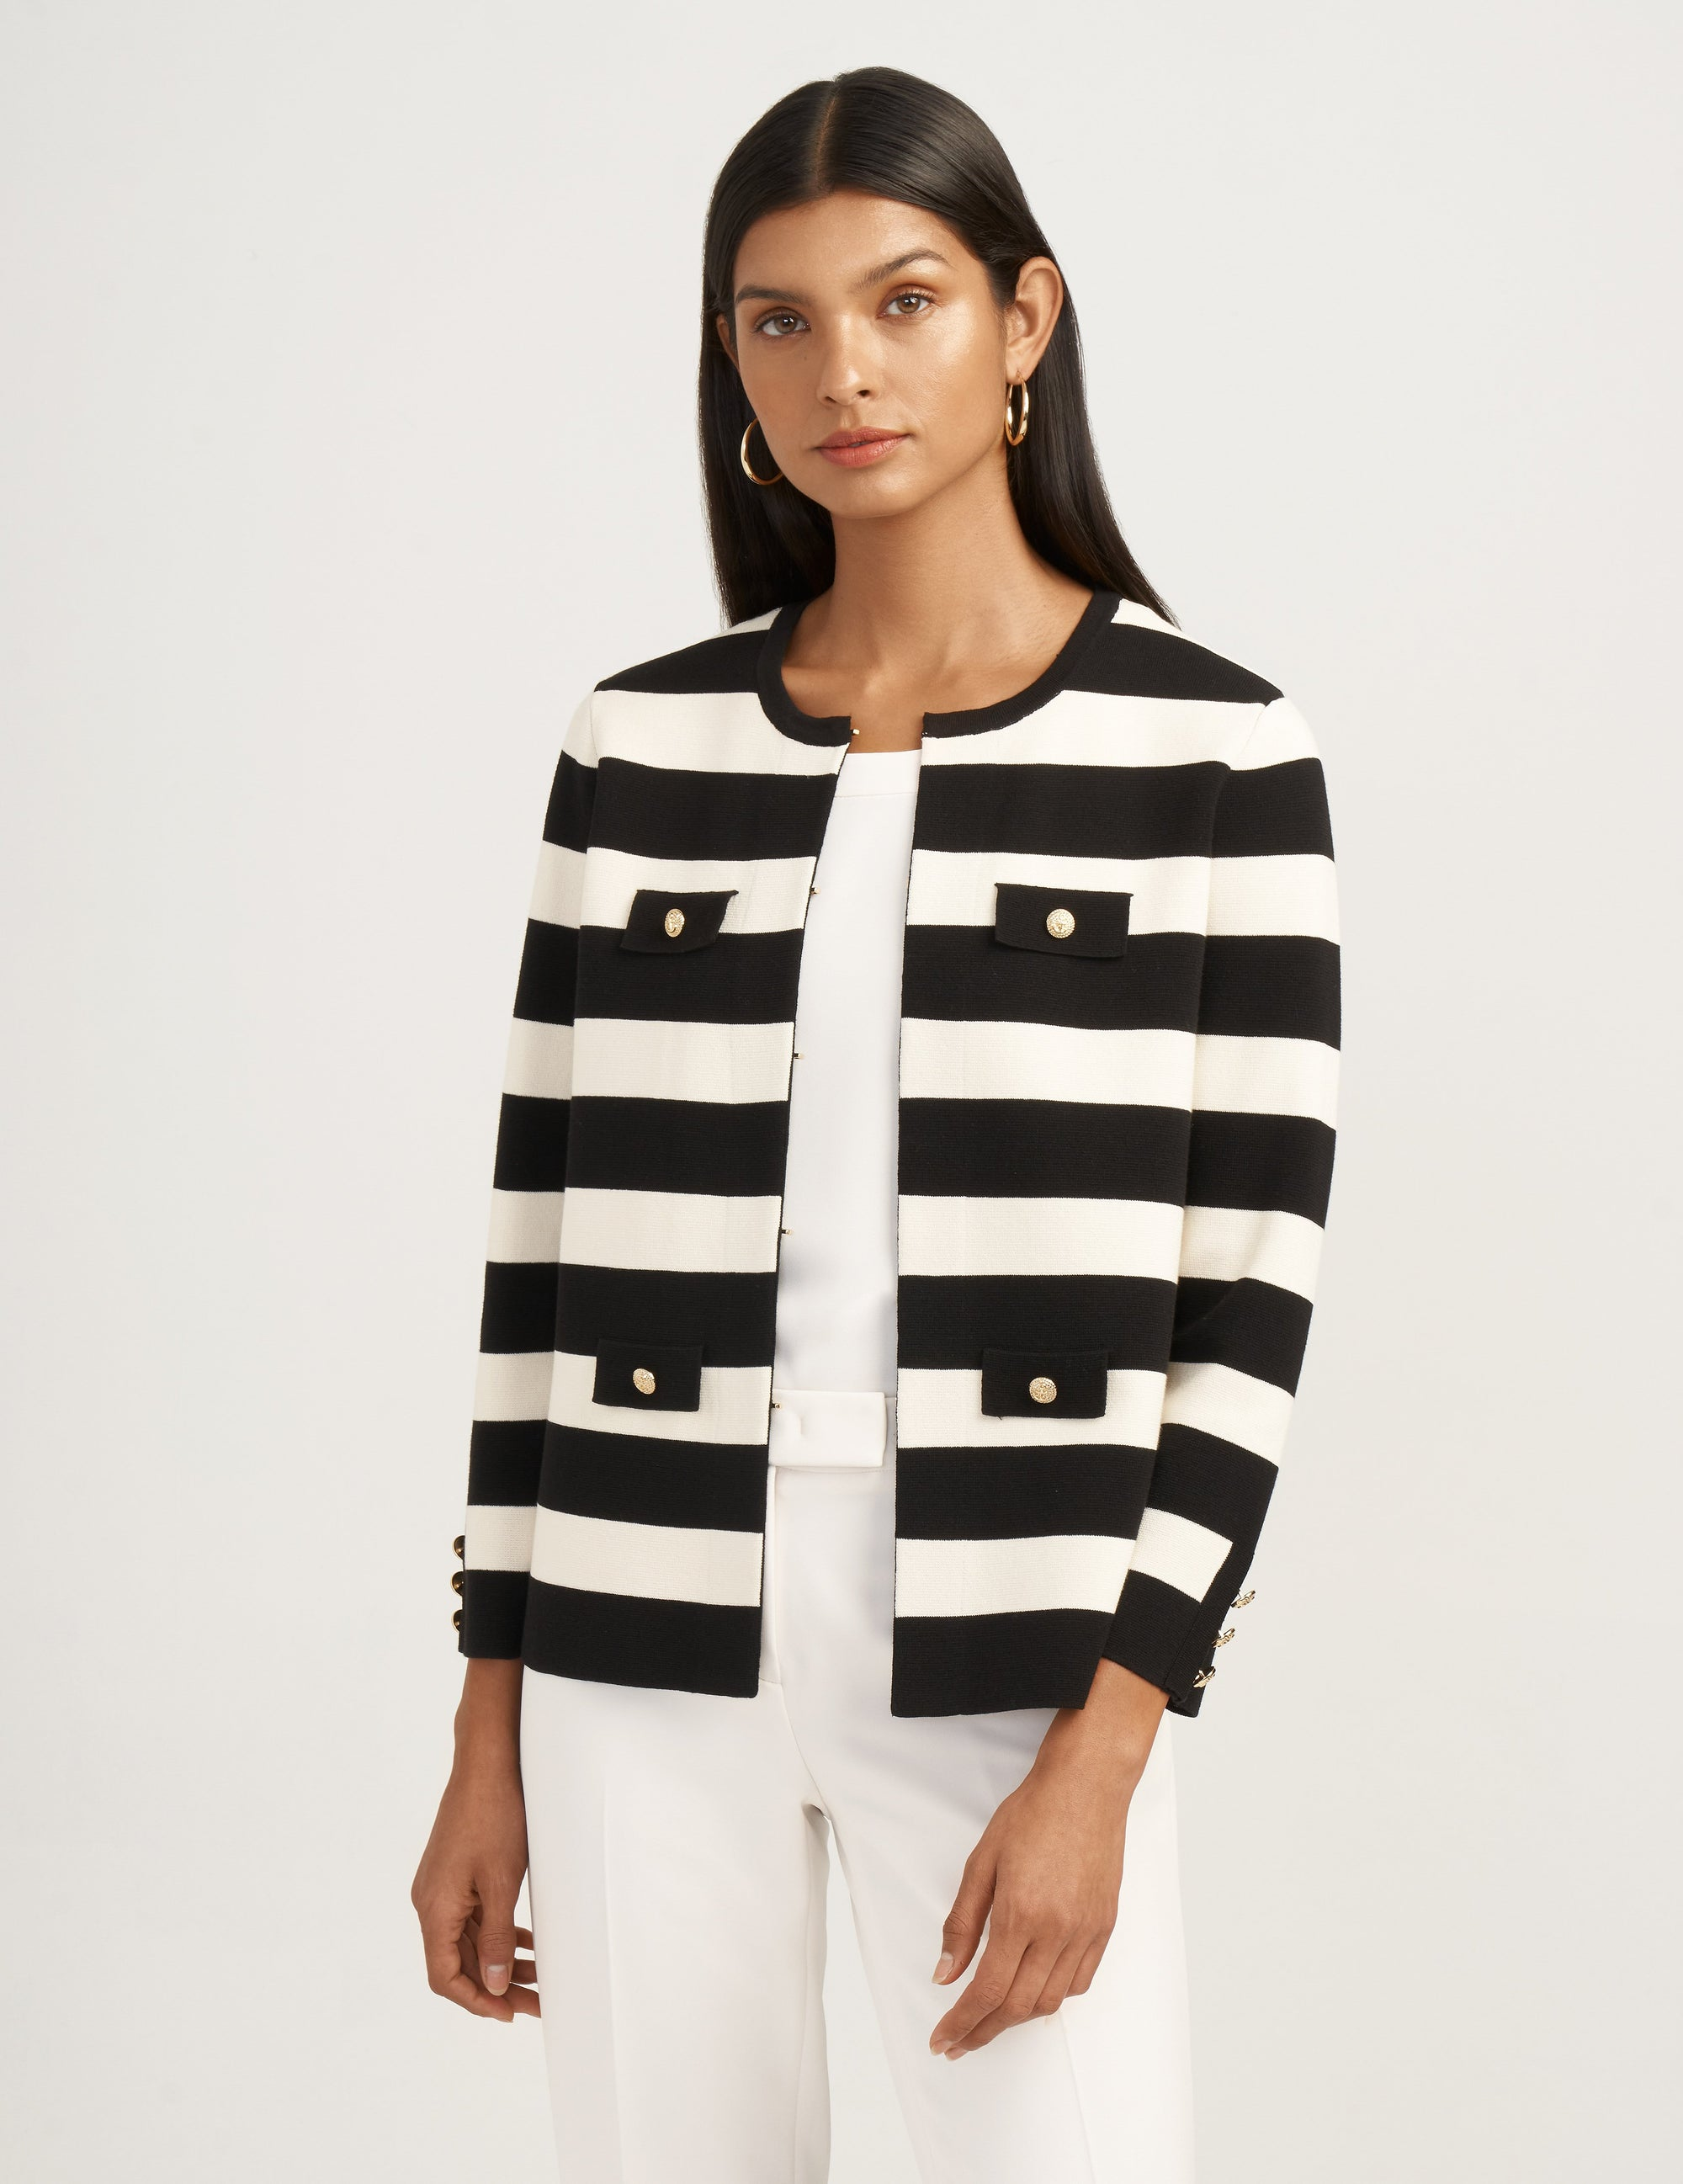 Anne Klein Black/White Striped Cardigan Jacket